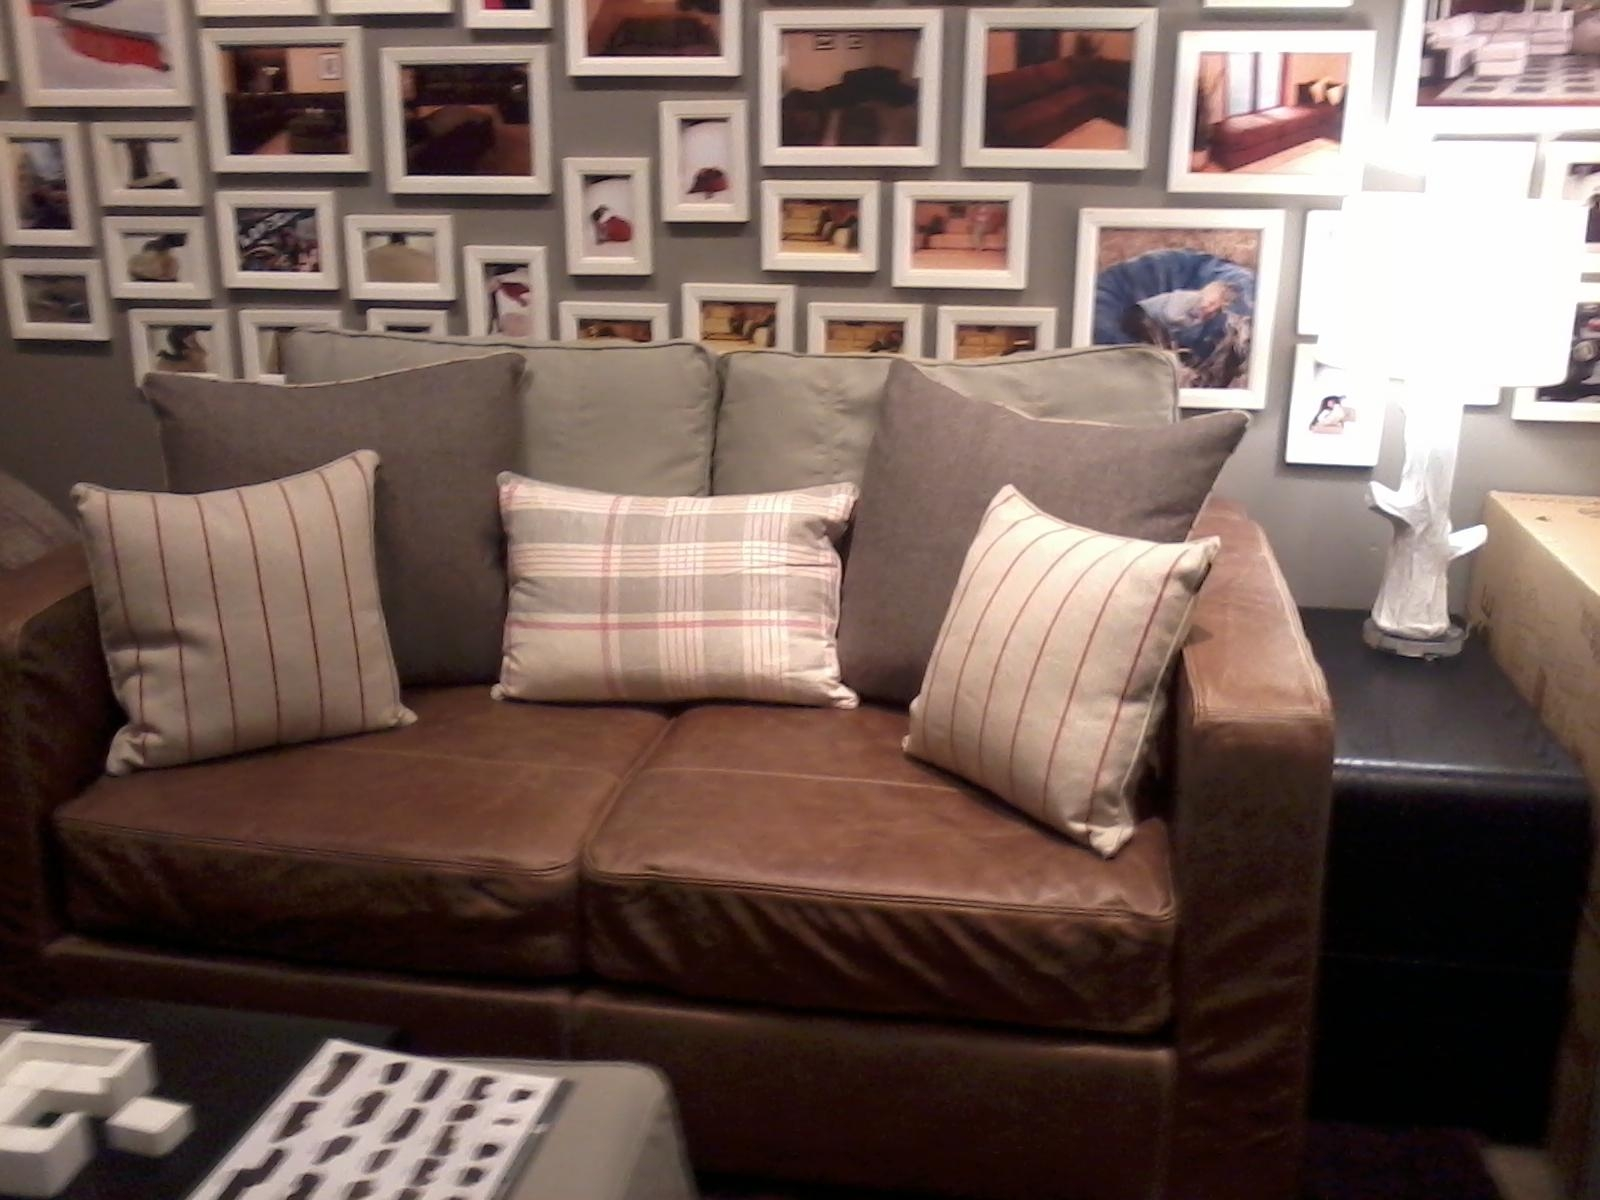 Lovesac Sofa With Design Photo 3193 | Kengire Intended For Love Sac Sofas (View 14 of 20)